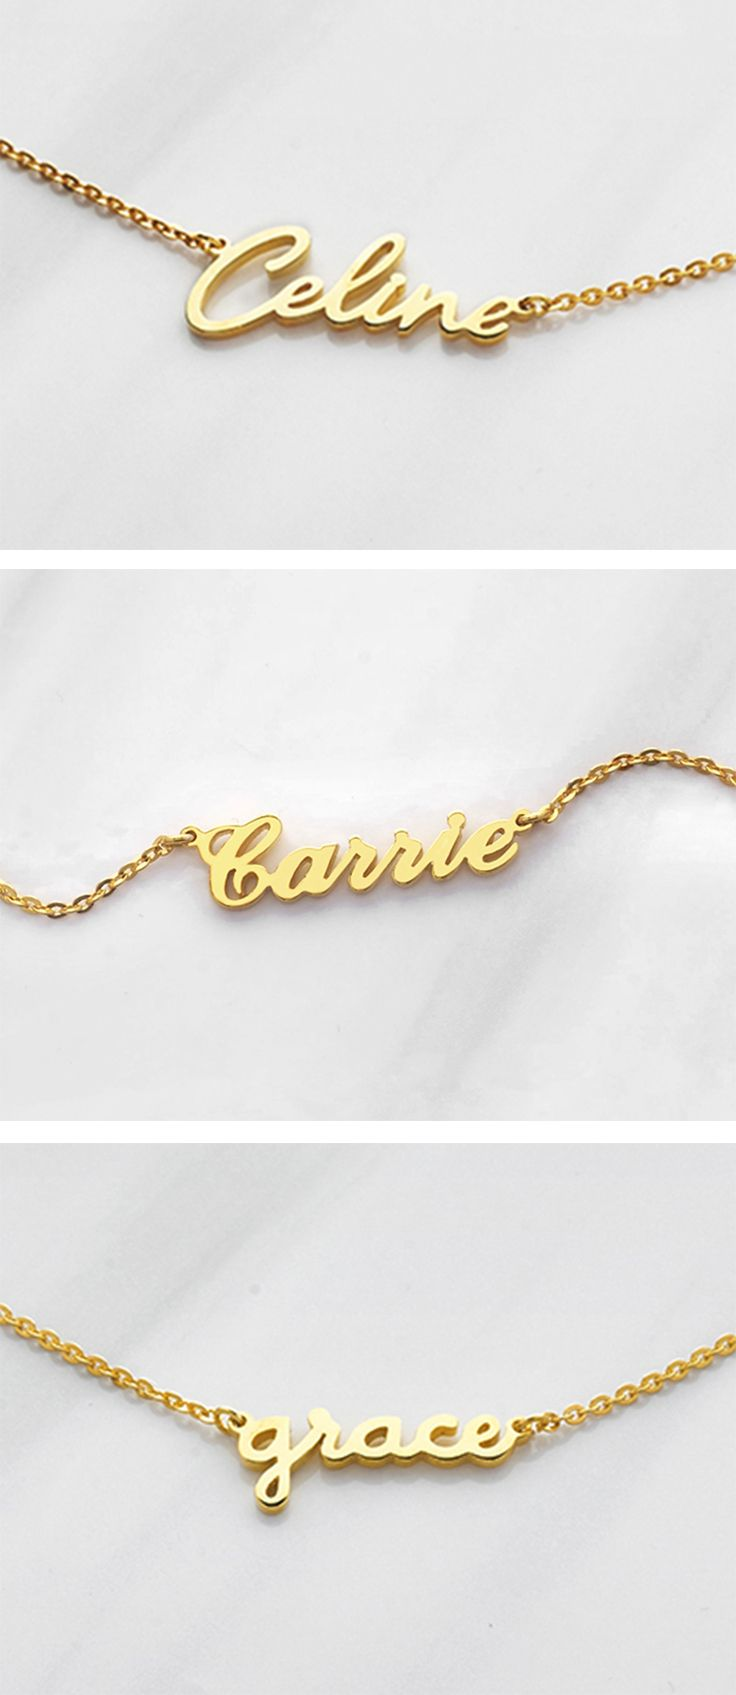 Gold name necklace, Gold-plated name necklace, Silver name necklace, Rose gold name necklace, Personalized name necklace, Custom name necklac, Necklace with name, Customized name necklace, Name pendant necklace, Name charm necklace, Custom name jewelry, Personalized name jewelry